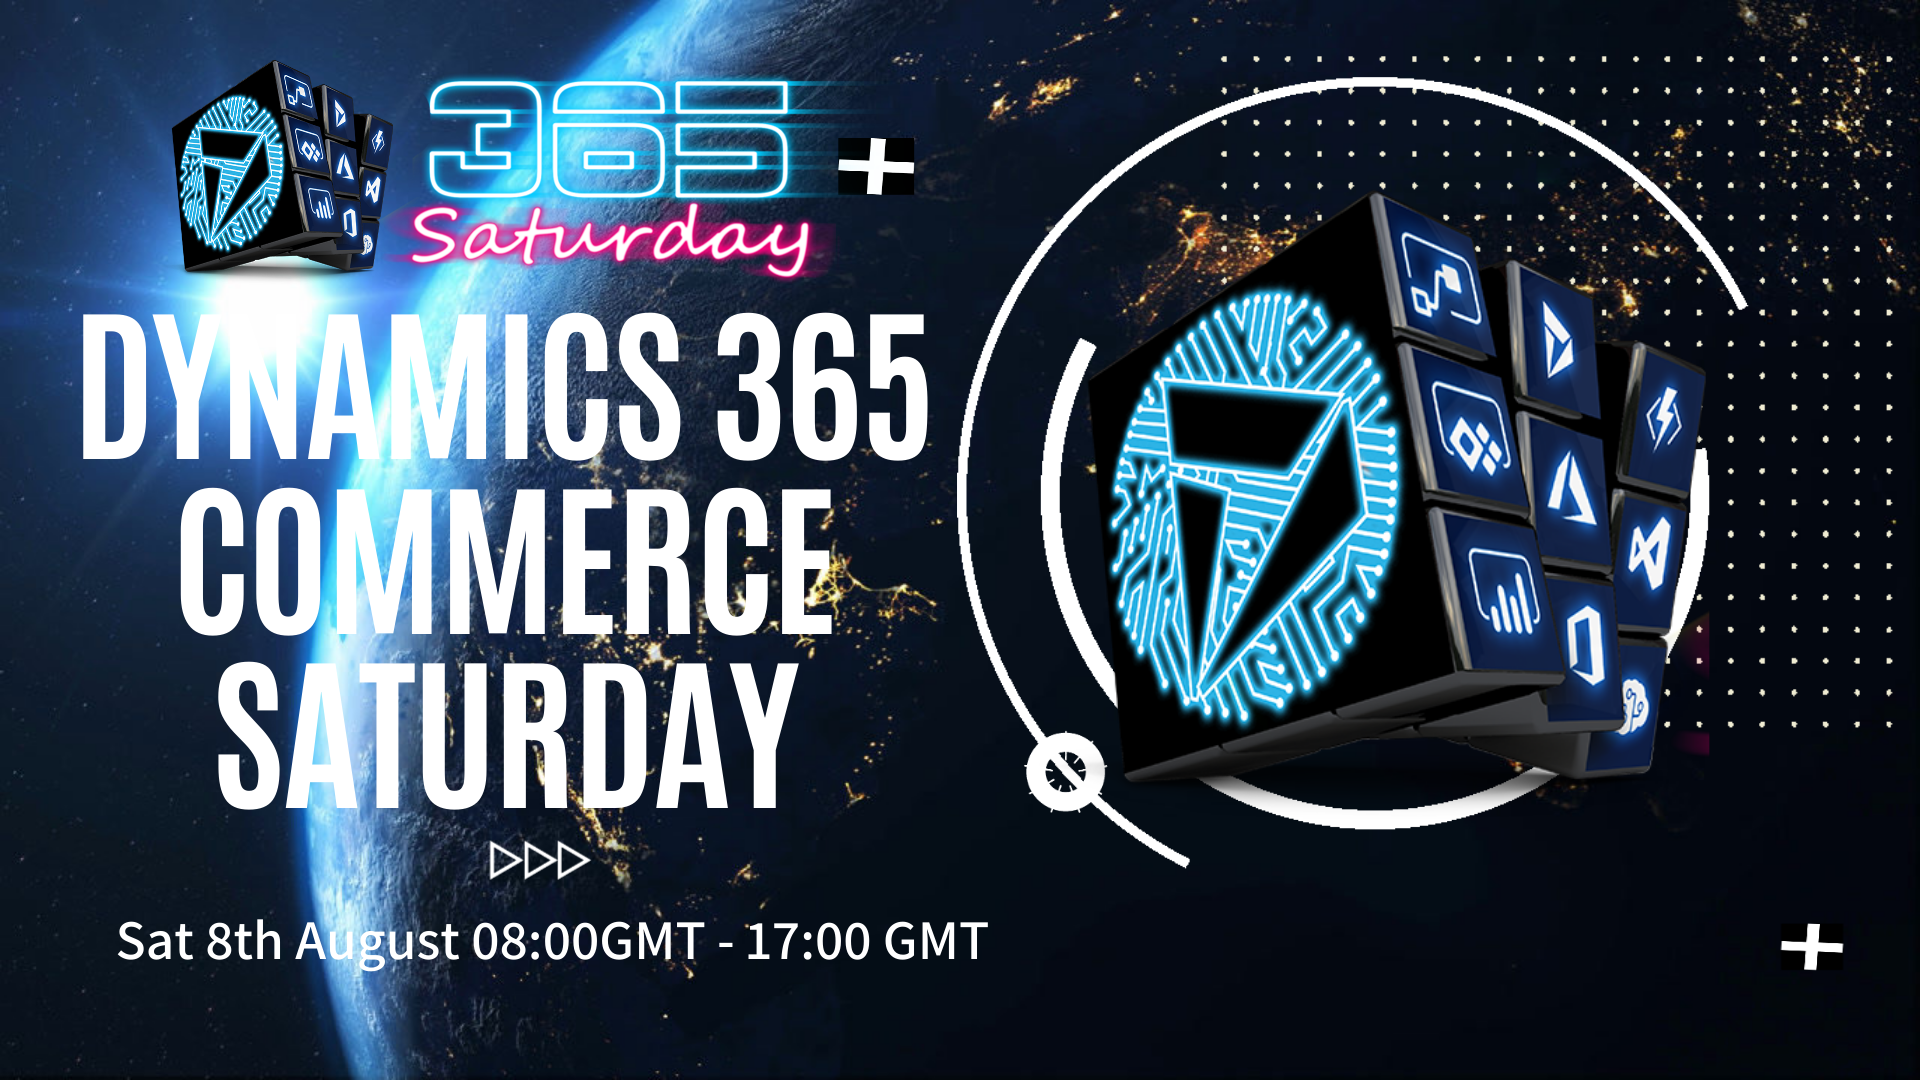 Dynamics 365 Commerce Saturday Event Poster